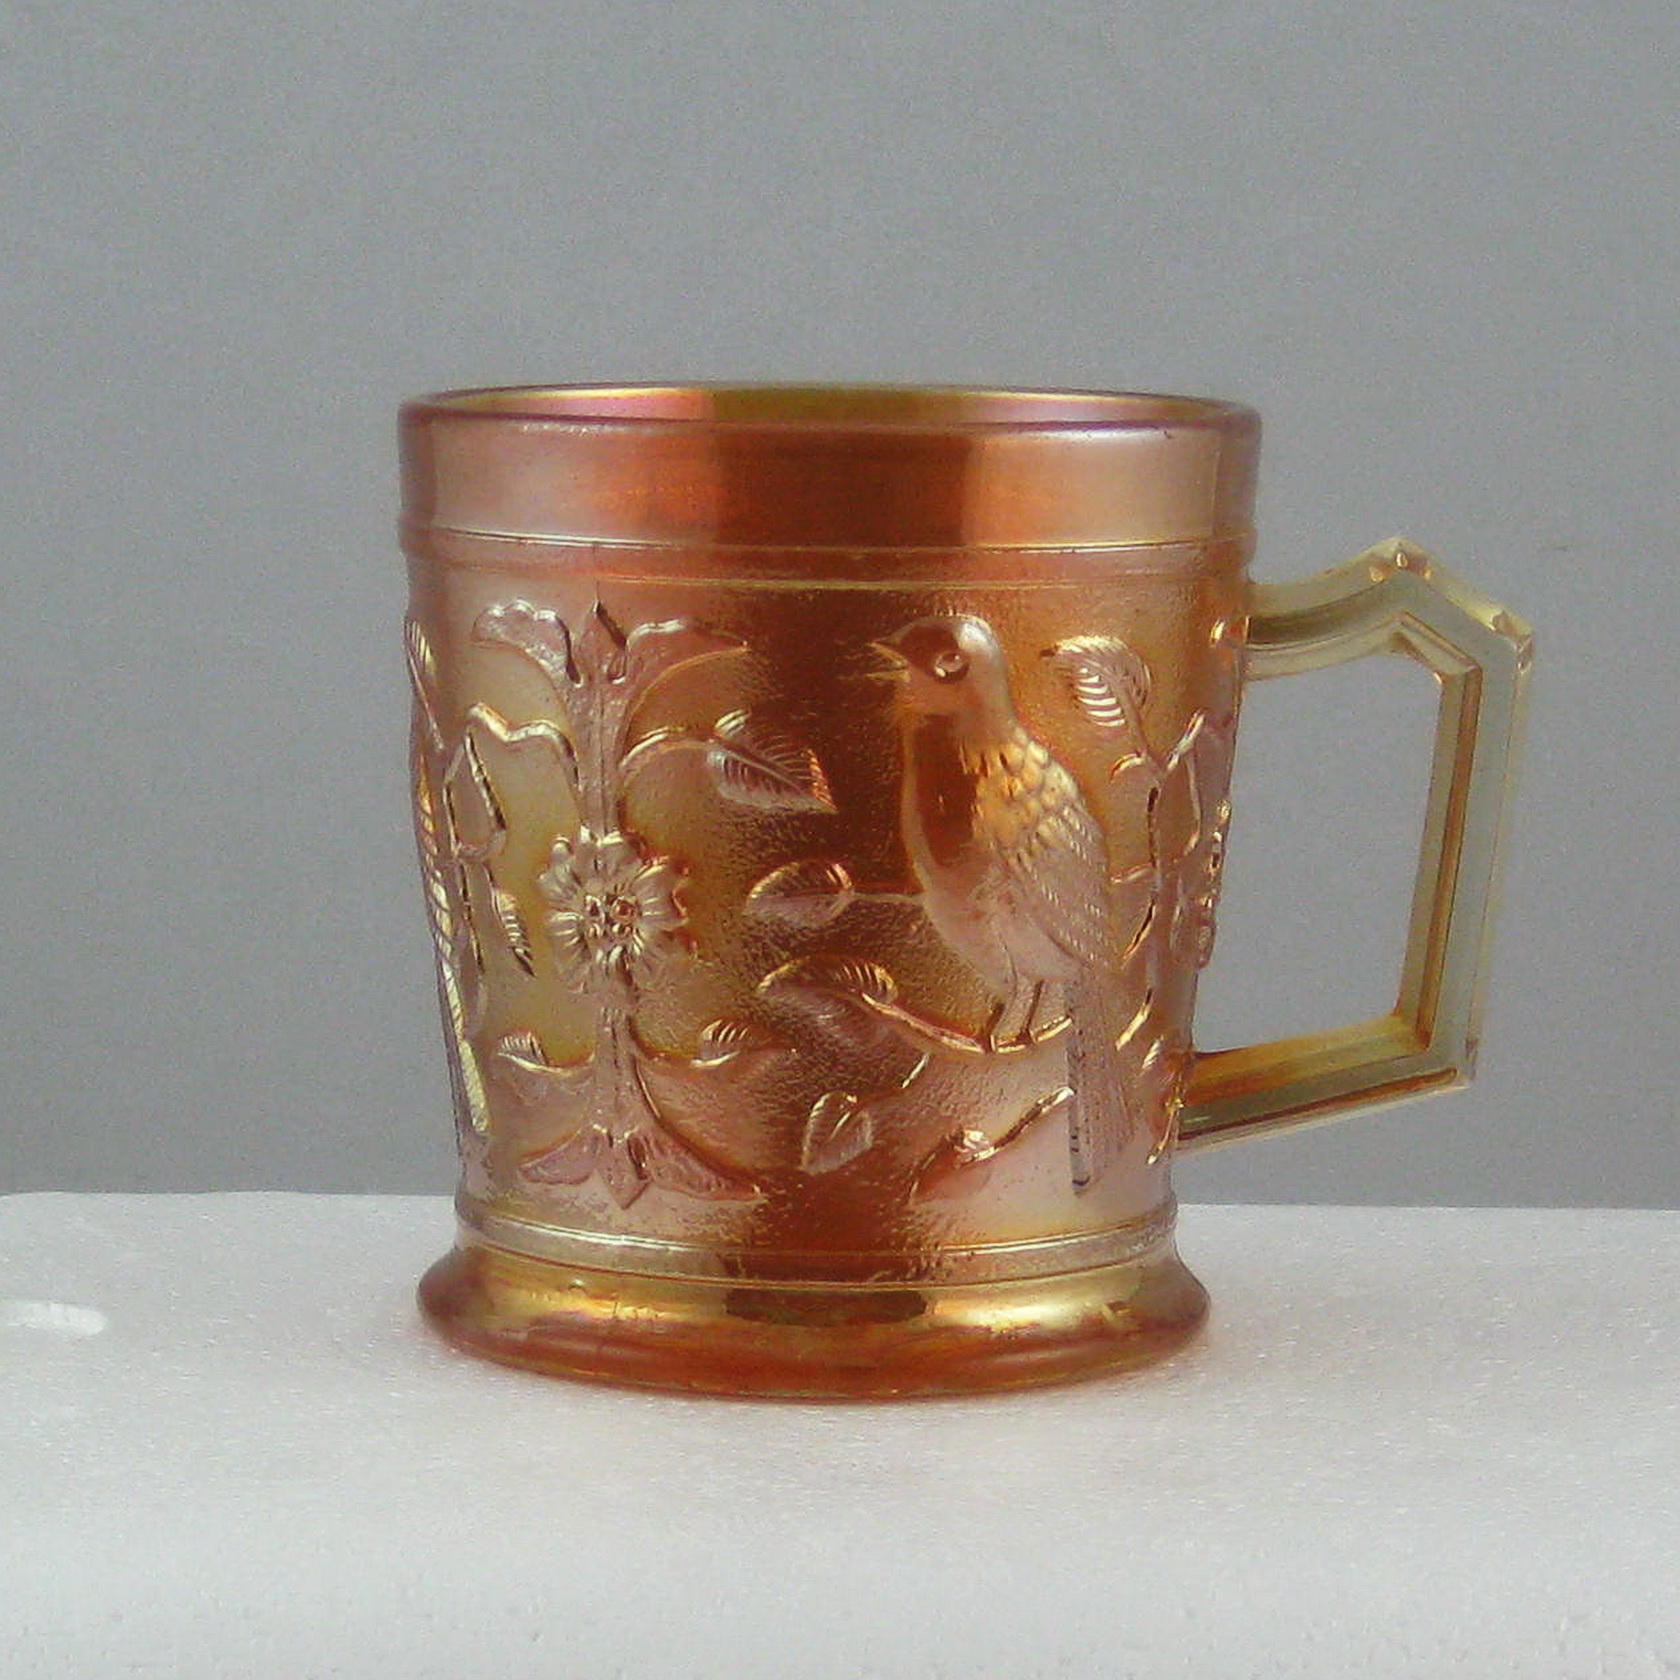 dating carnival glass Identifying carnival glass can be tough there are thousands of patterns and dozens of makers over the last 90 plus years and the glass making industry has always been highly competitive.